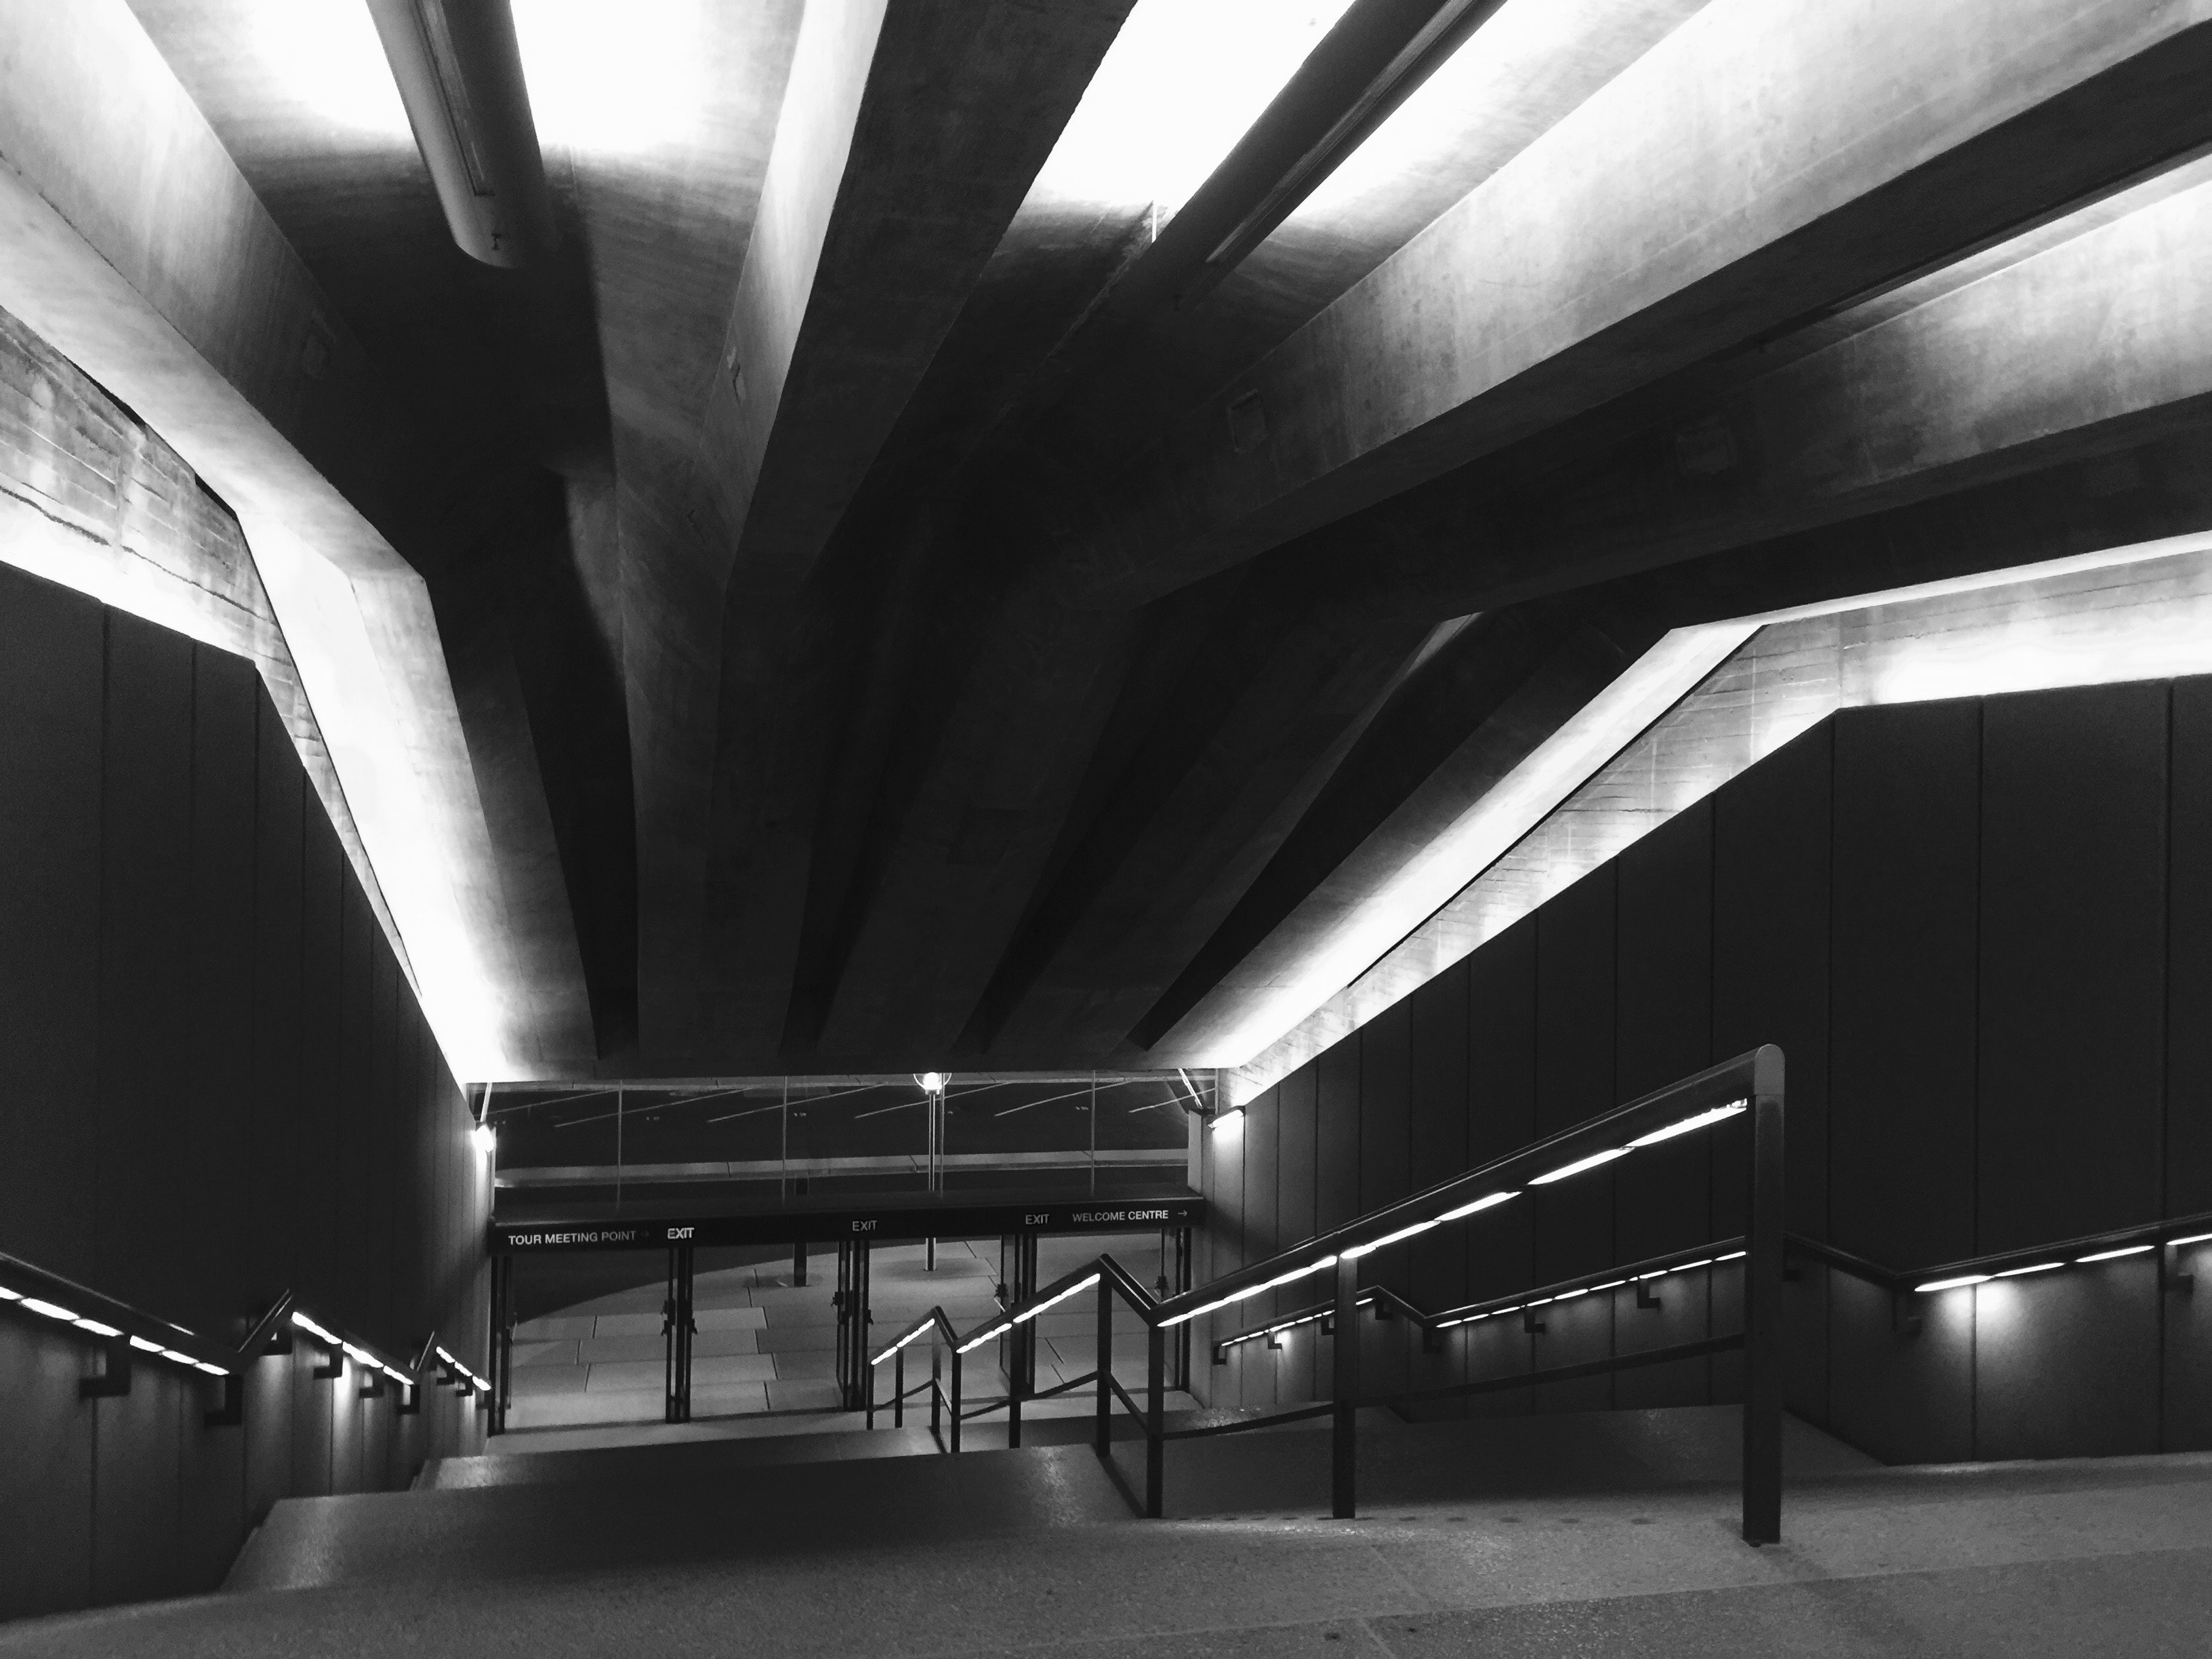 Black and White Photography of Stairs, Architecture, Art, Black-and-white, Building, HQ Photo